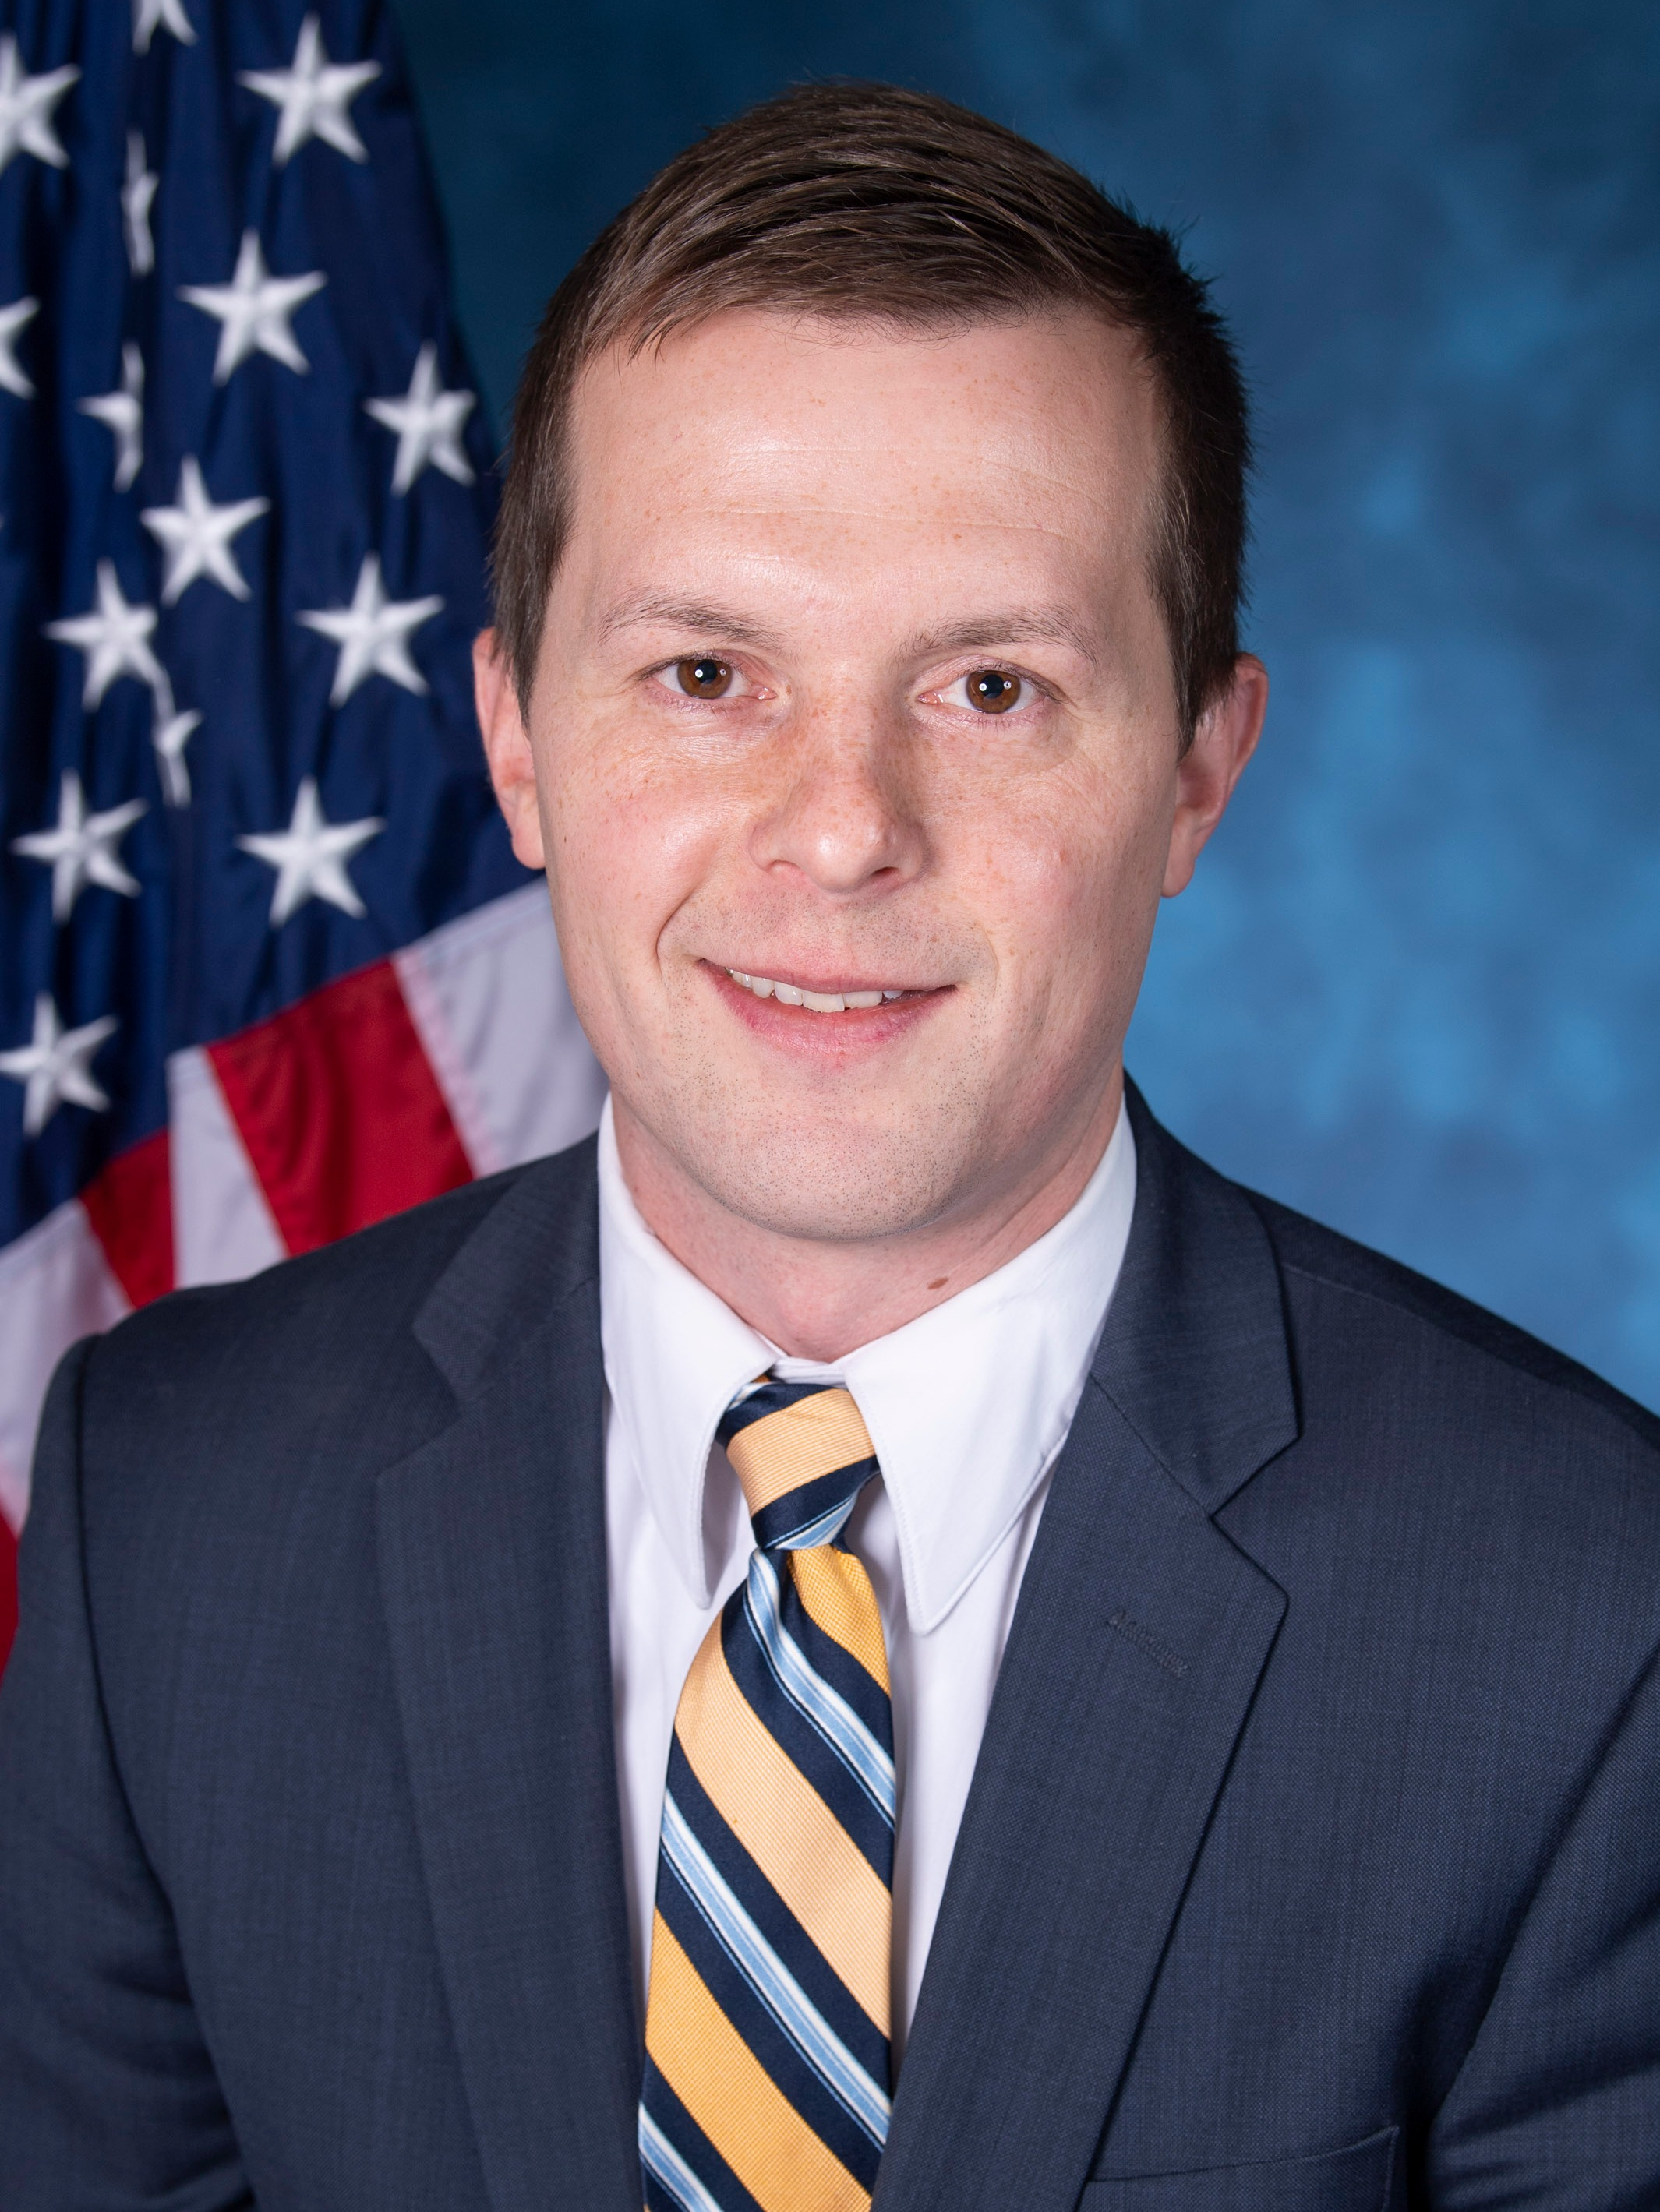 Rep. Jared Golden (D) - District 2Phone: (202) 225-6306Website: https://golden.house.gov/contact/email-me